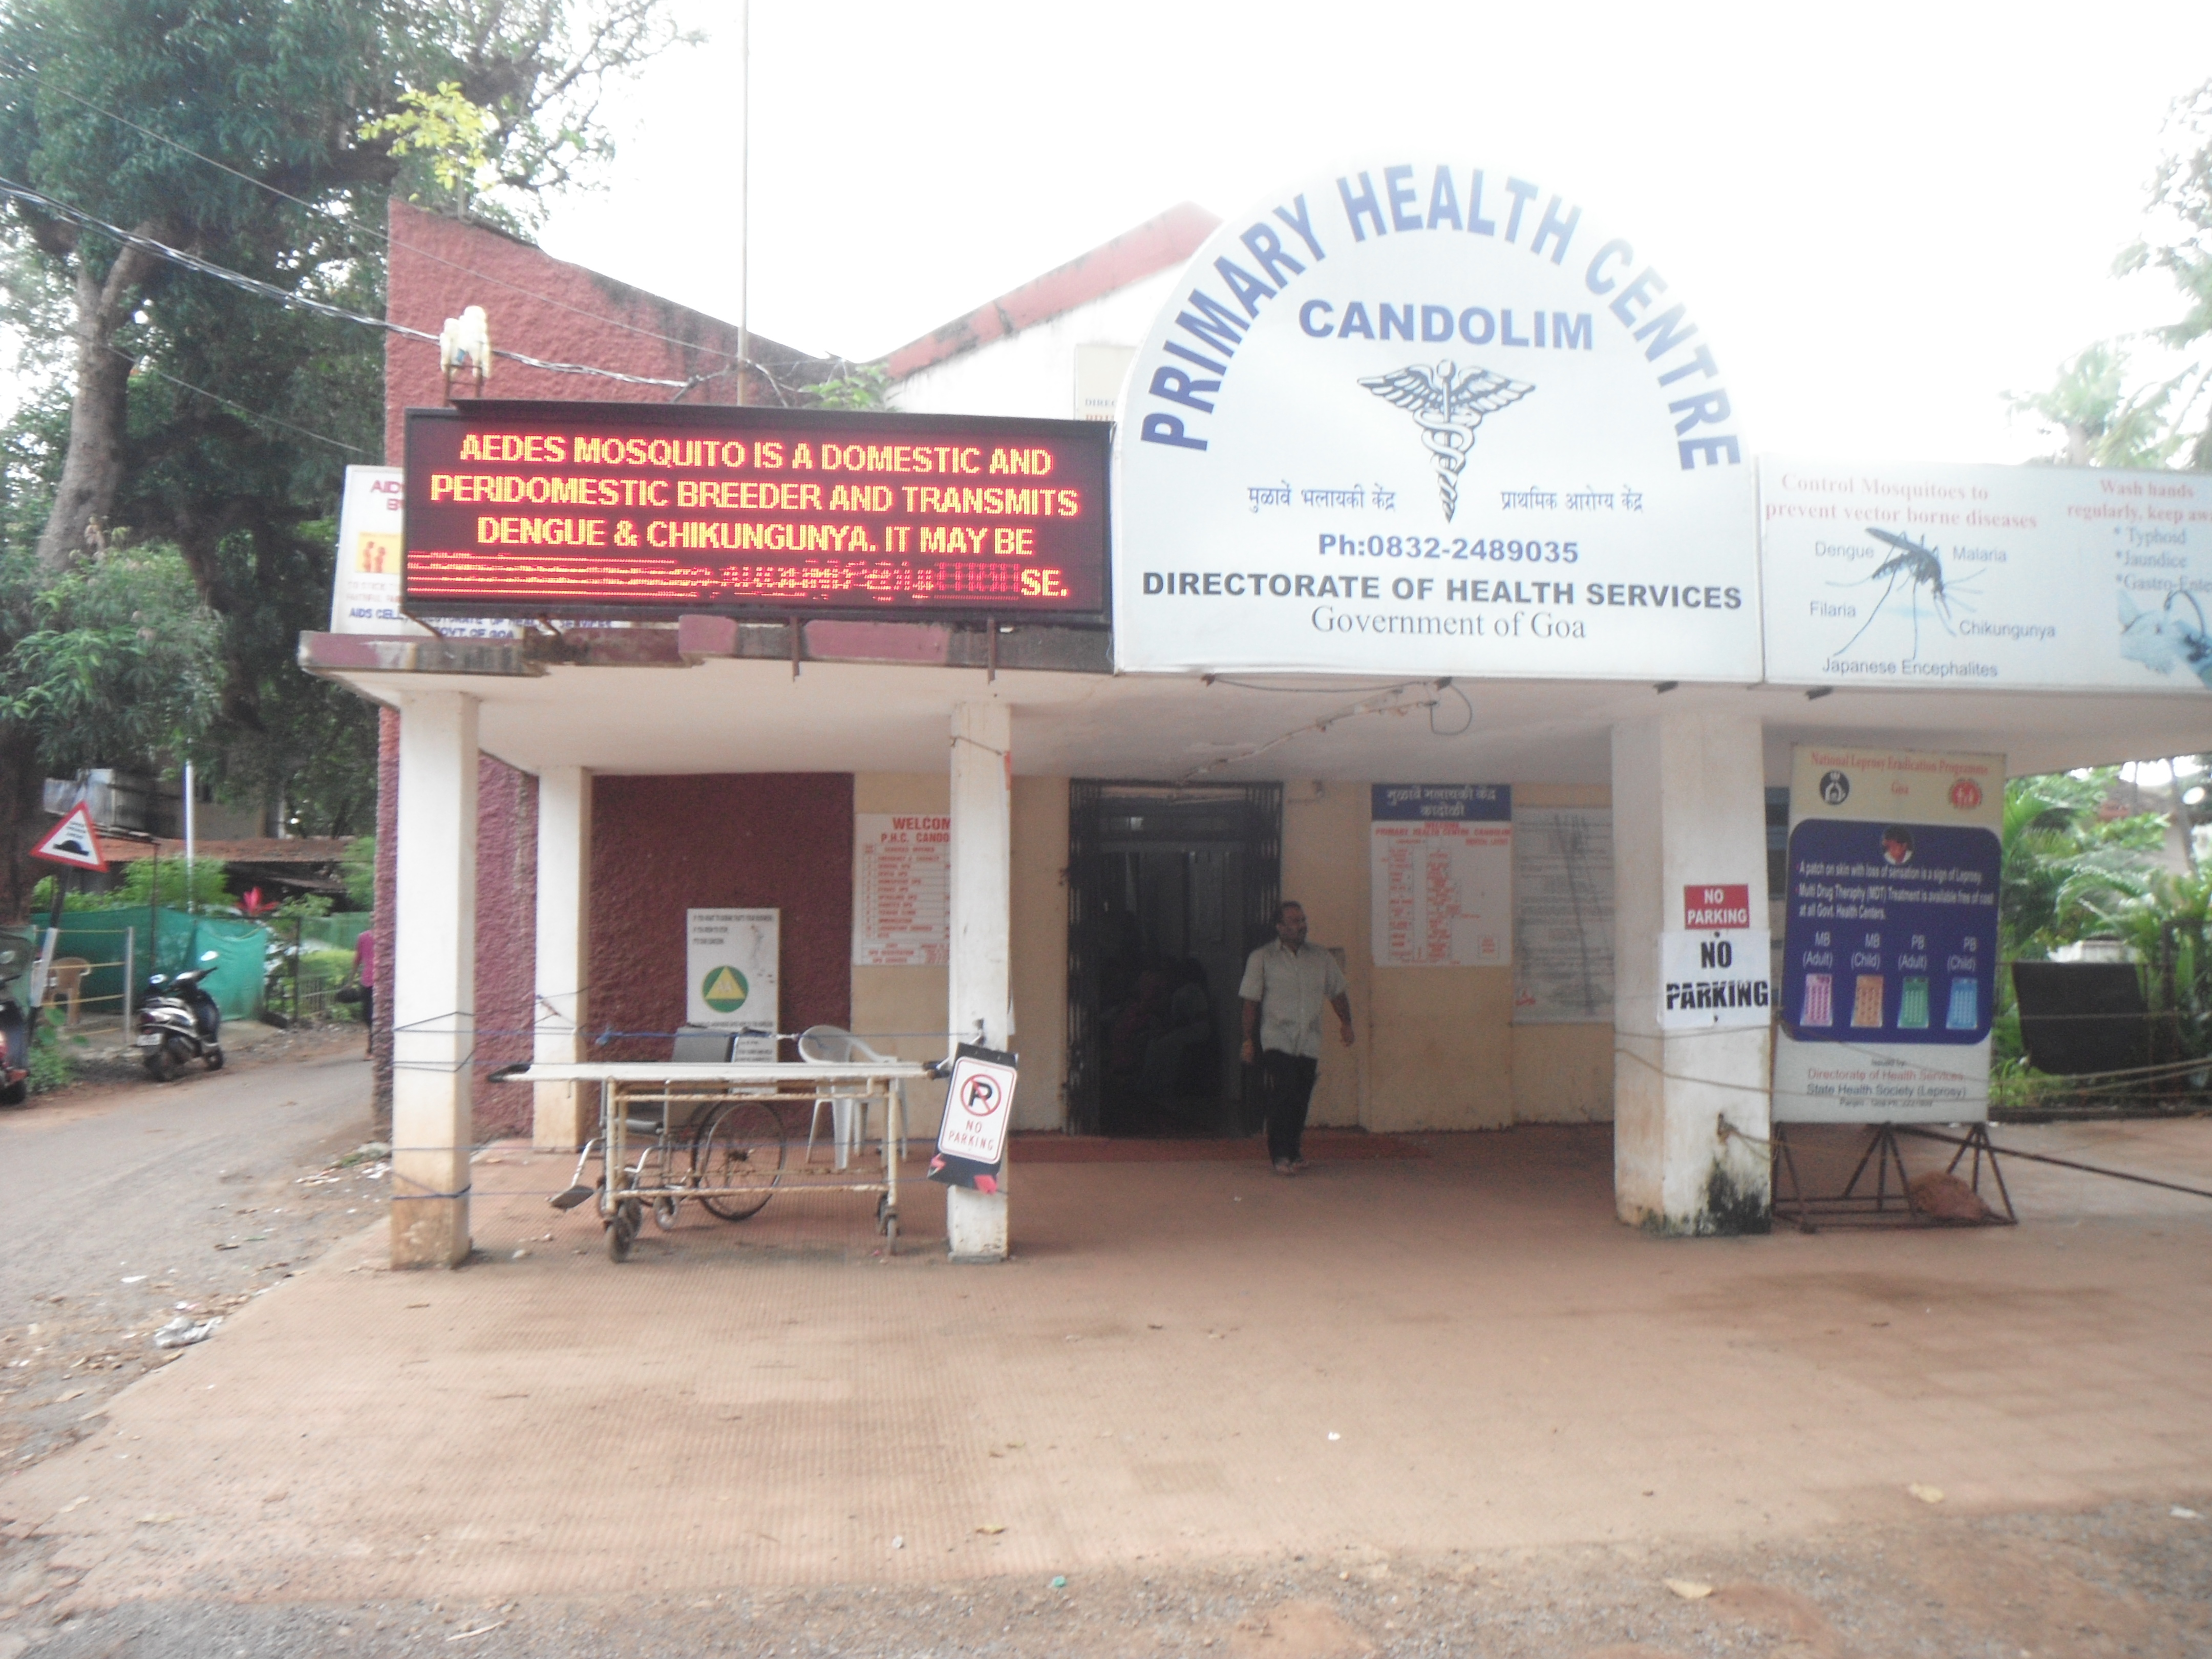 A primary health centre in Goa. Photo credit: RubyGoes/Flickr